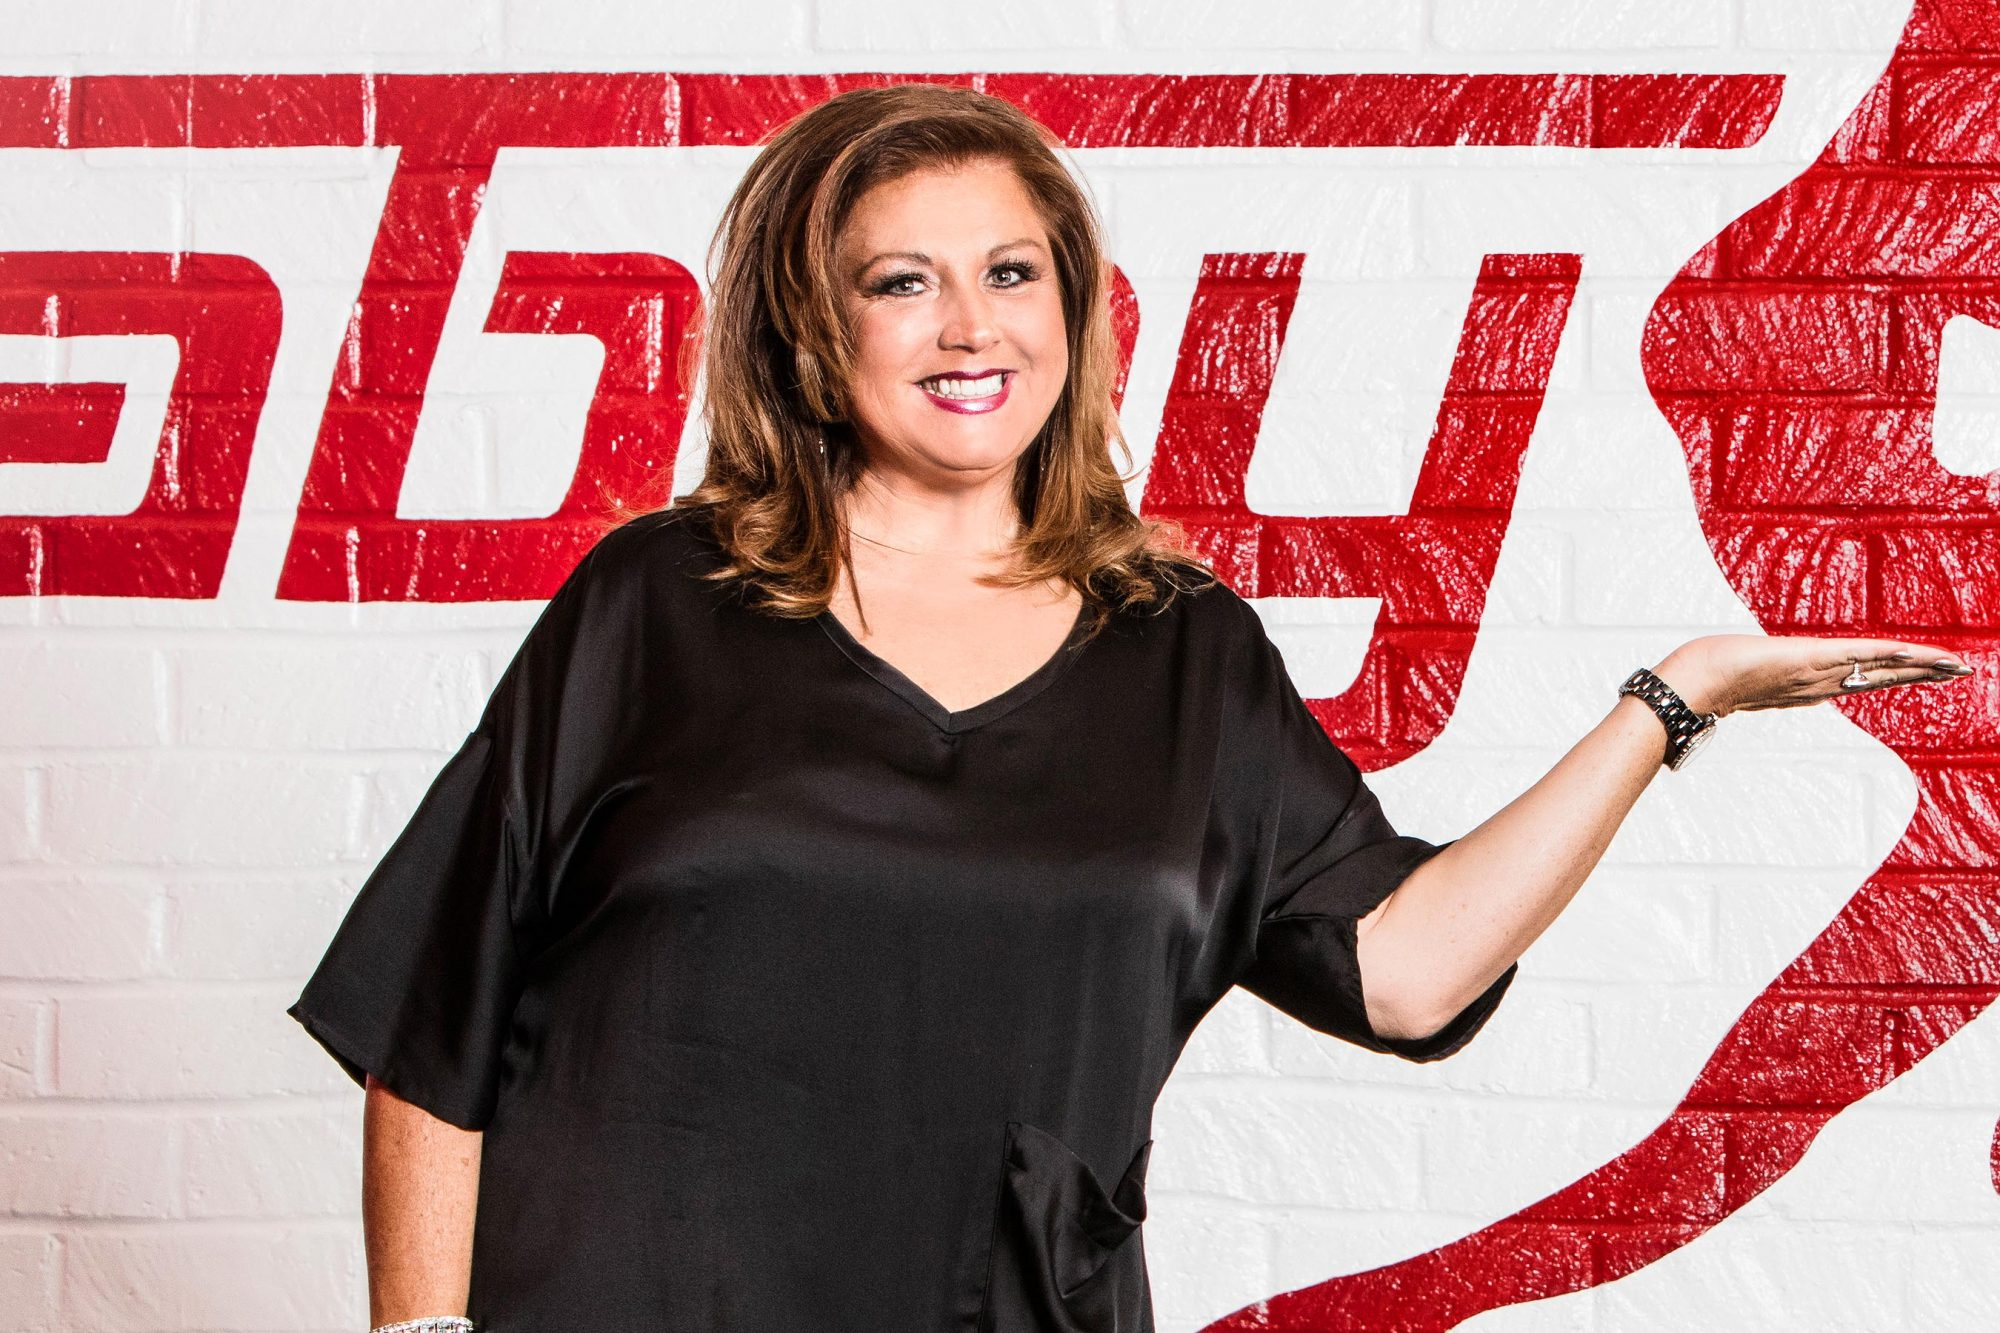 DANCE MOMSSeason 6 GalleryJanuary 5, 2016Pictured: Abby Lee Miller